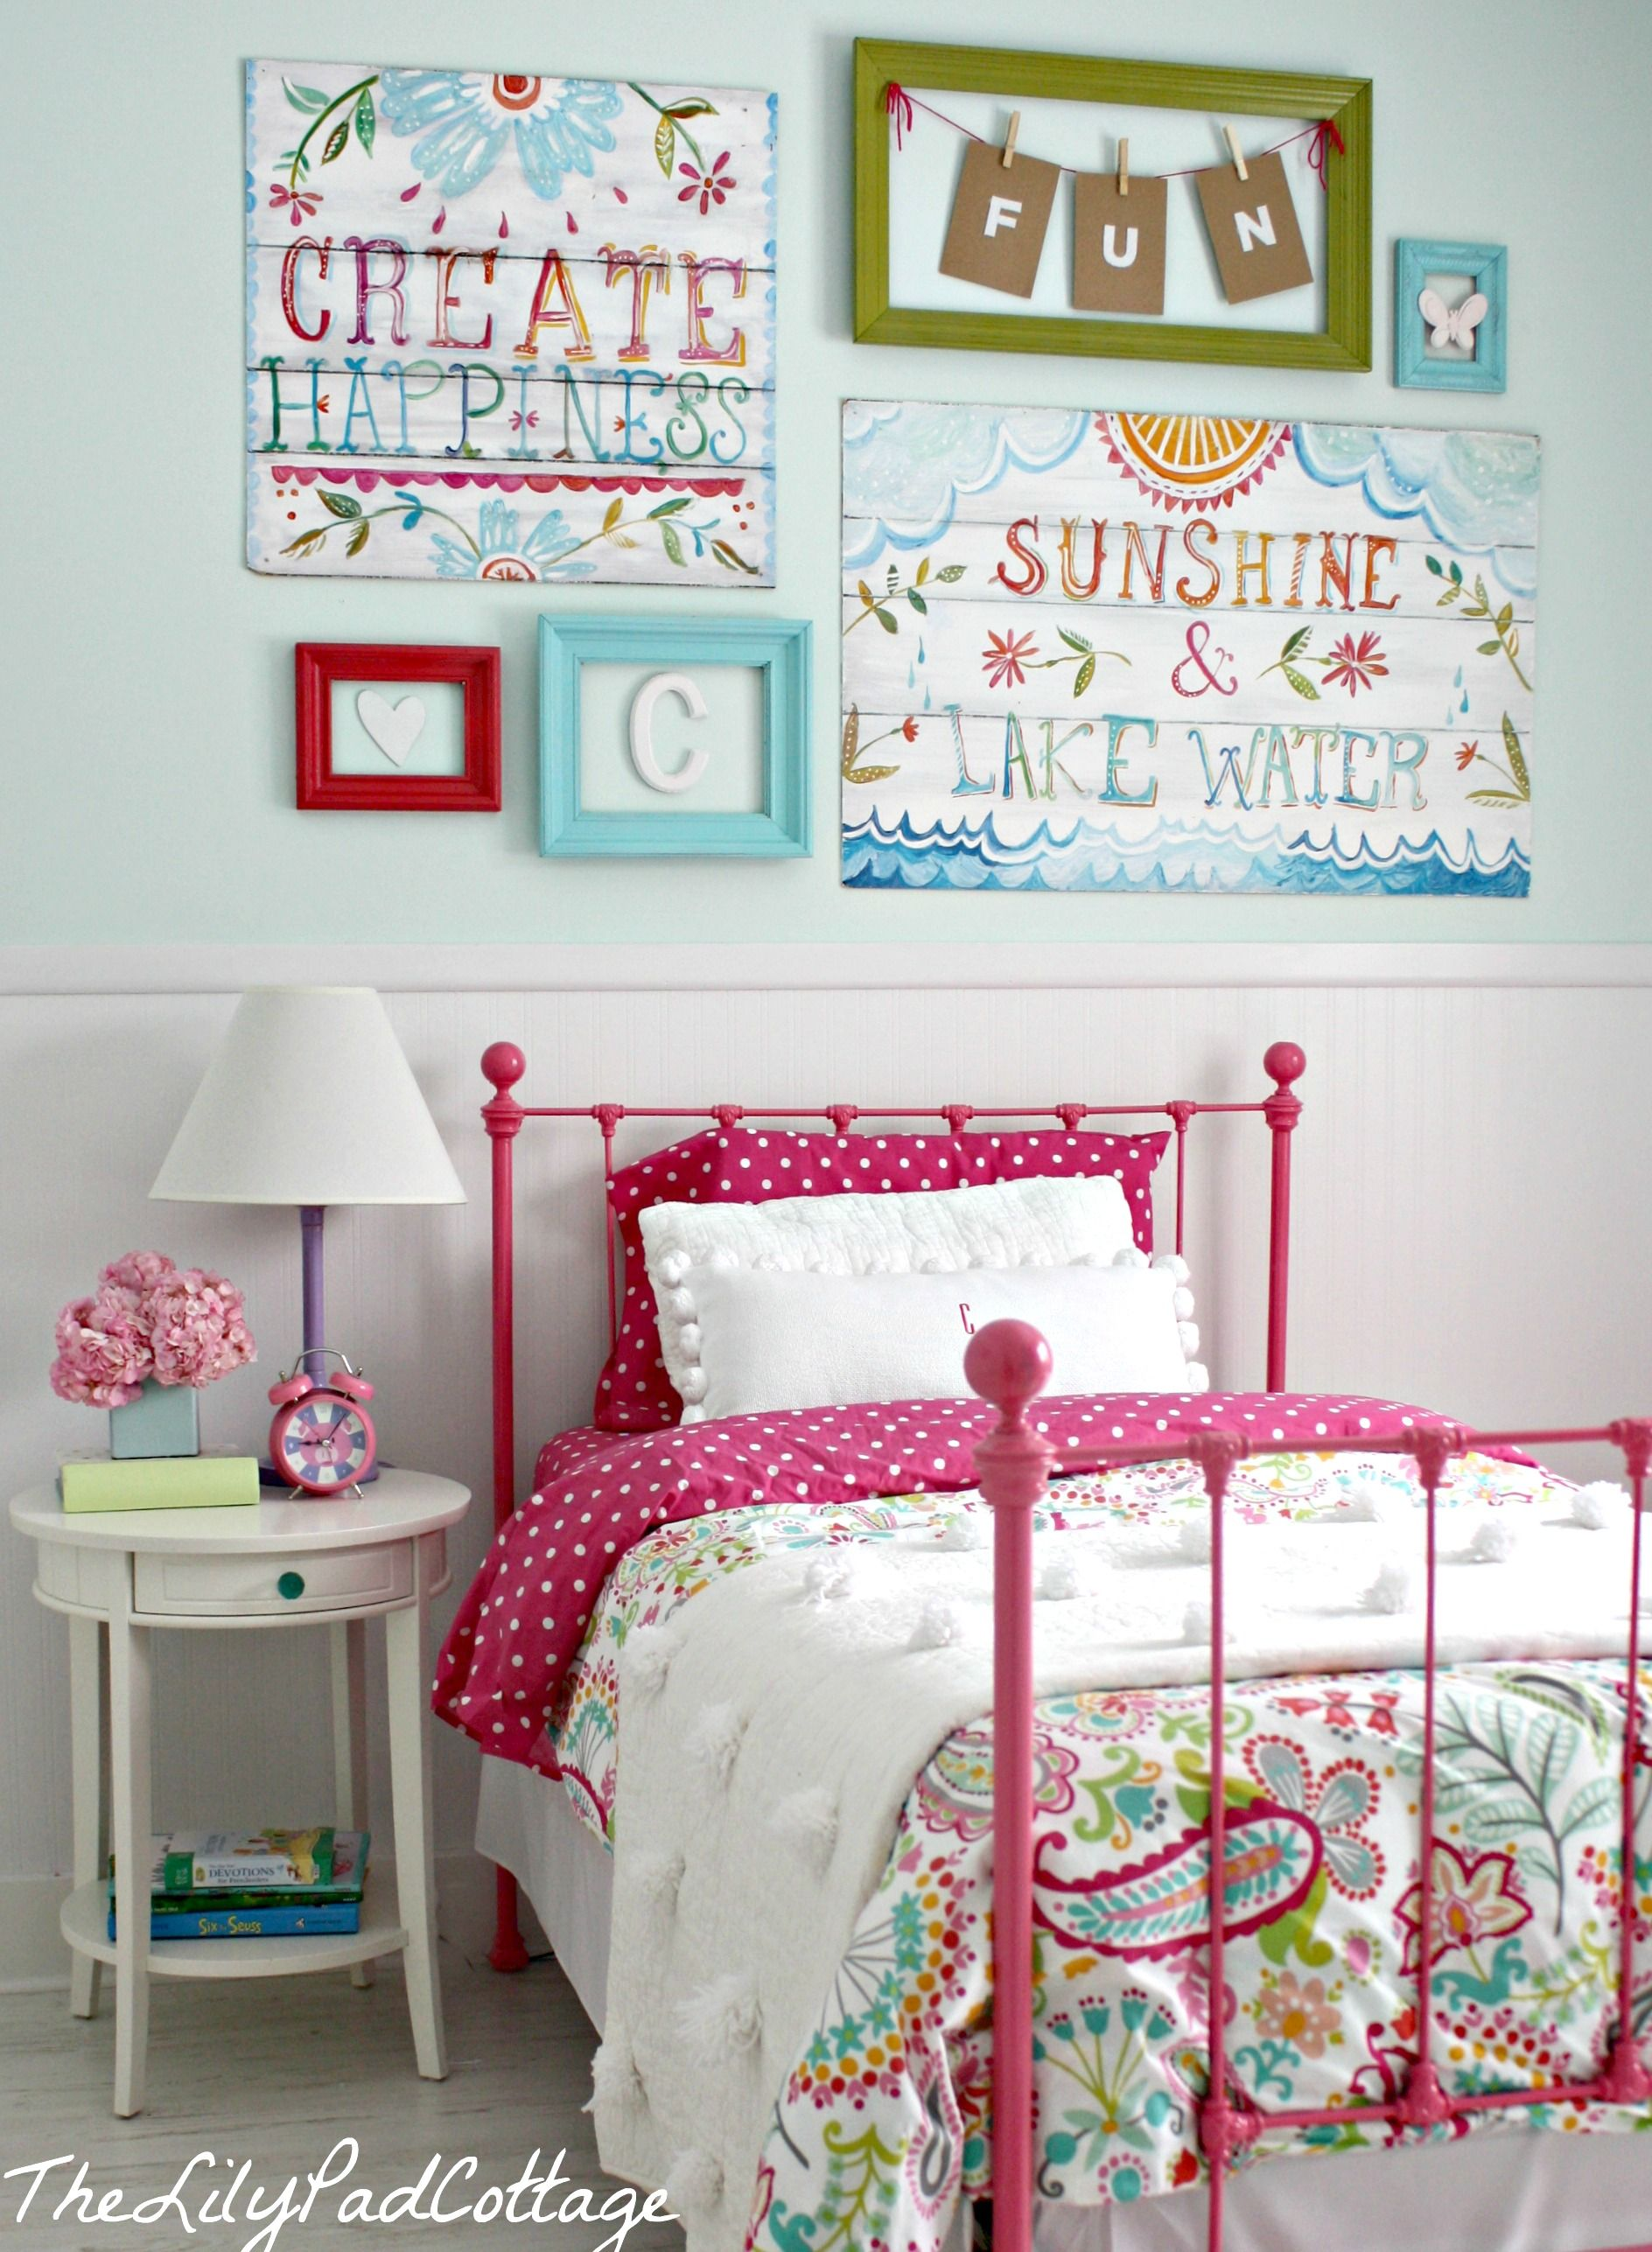 for mat simple ideas bed home bedroom your girl fantastic